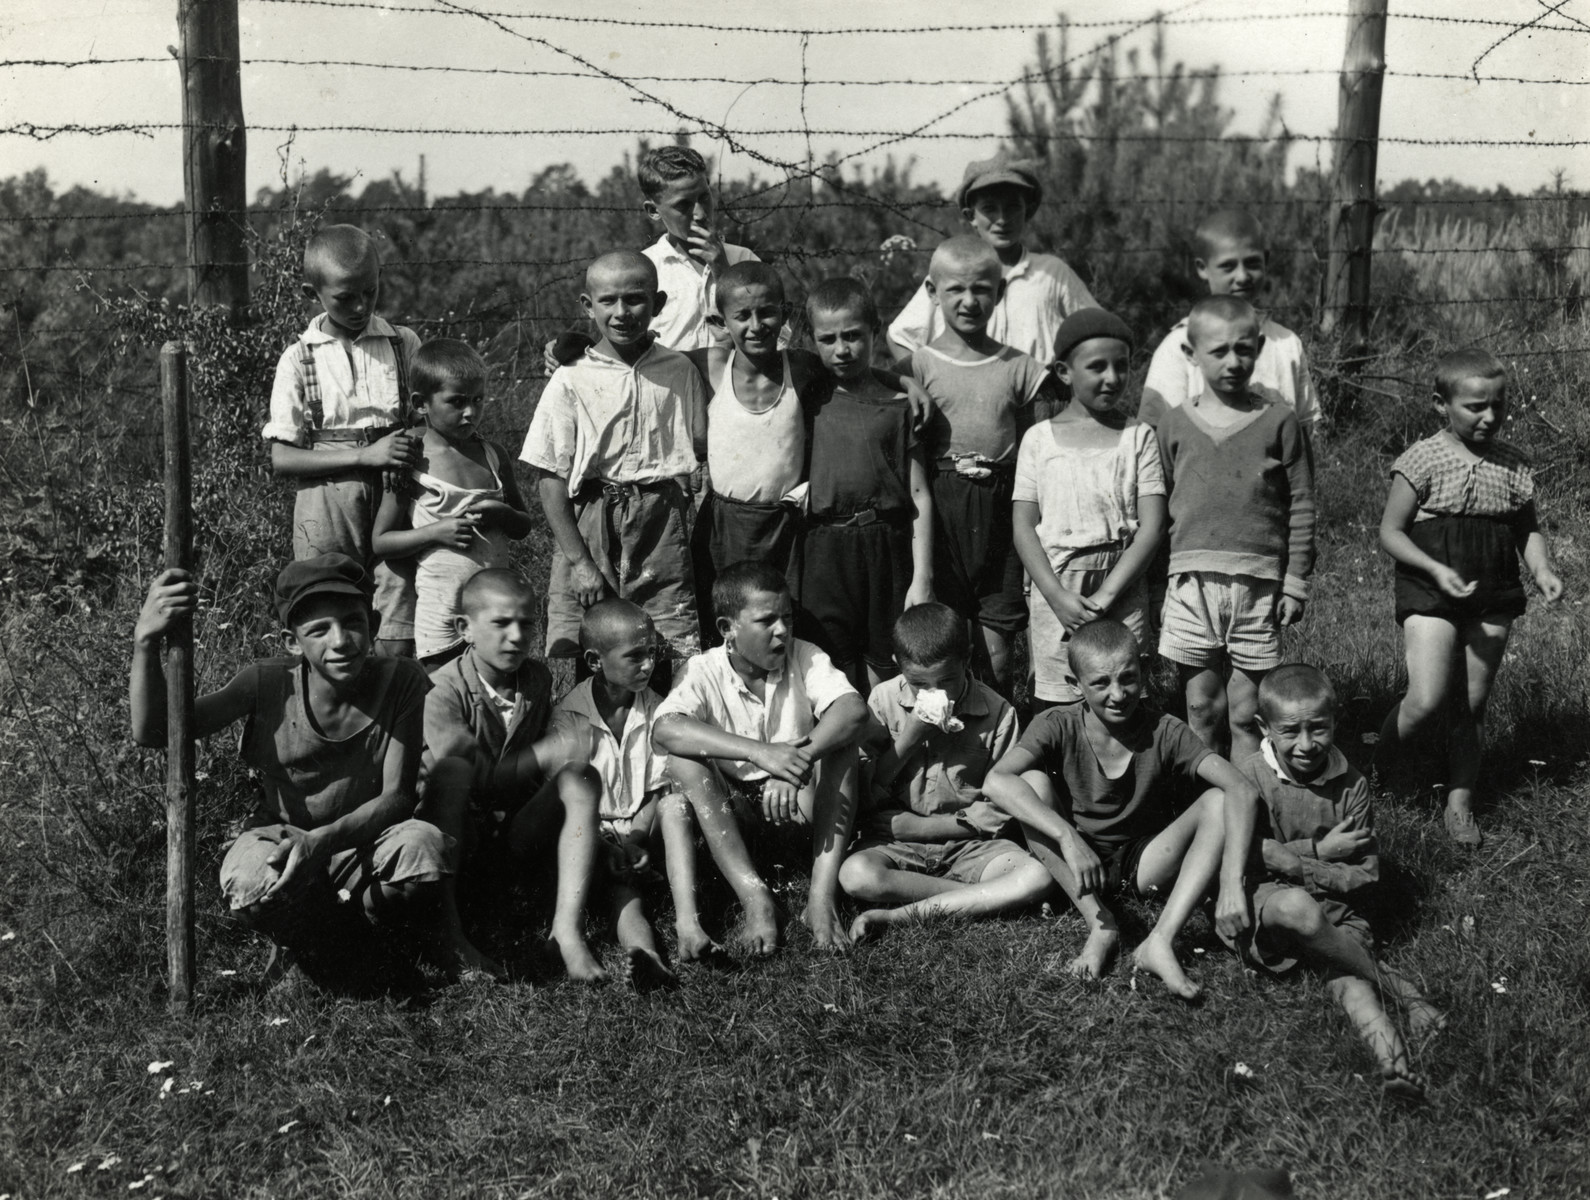 Boys from Korczak's orphanage pose outside on a field.